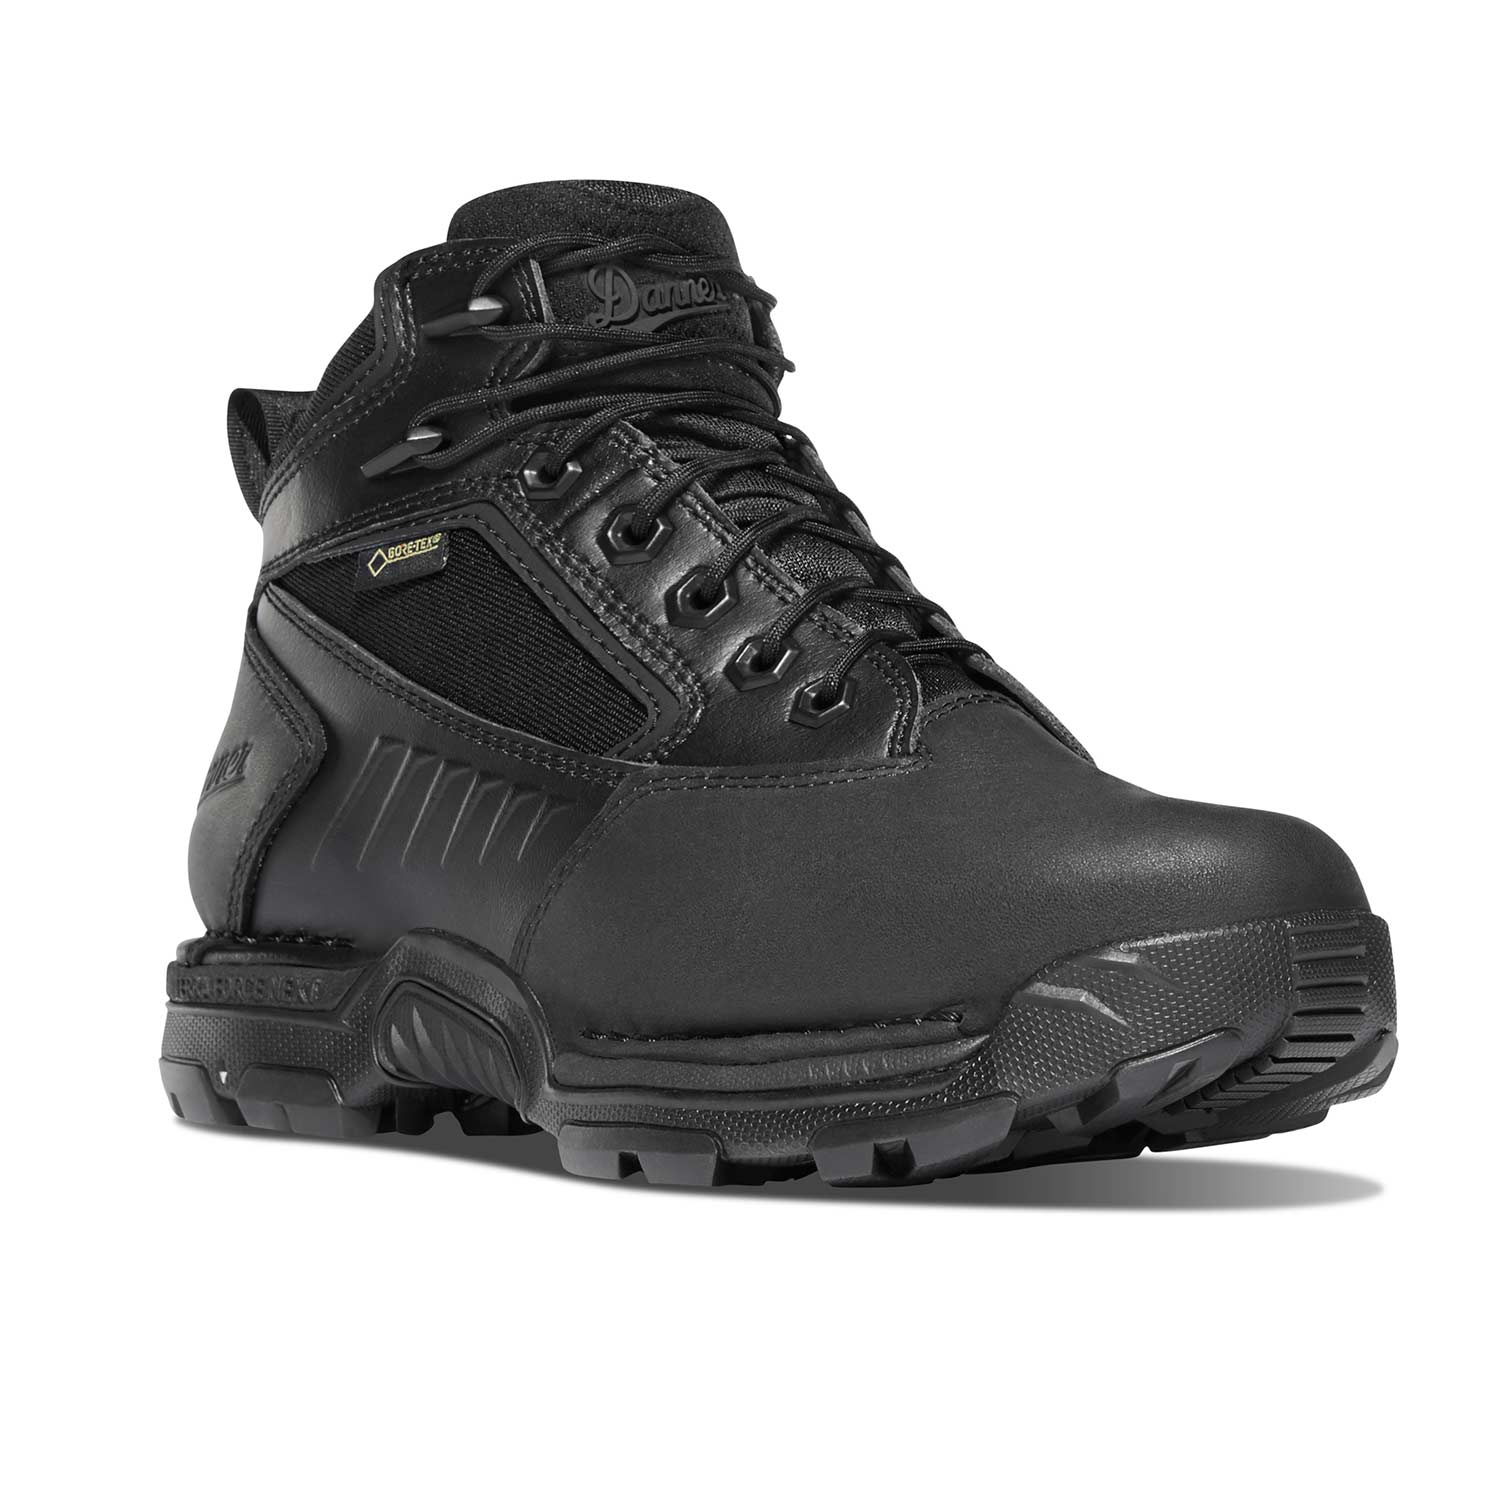 "Danner Women's Striker Bolt 4.5"" Quarter Boot"